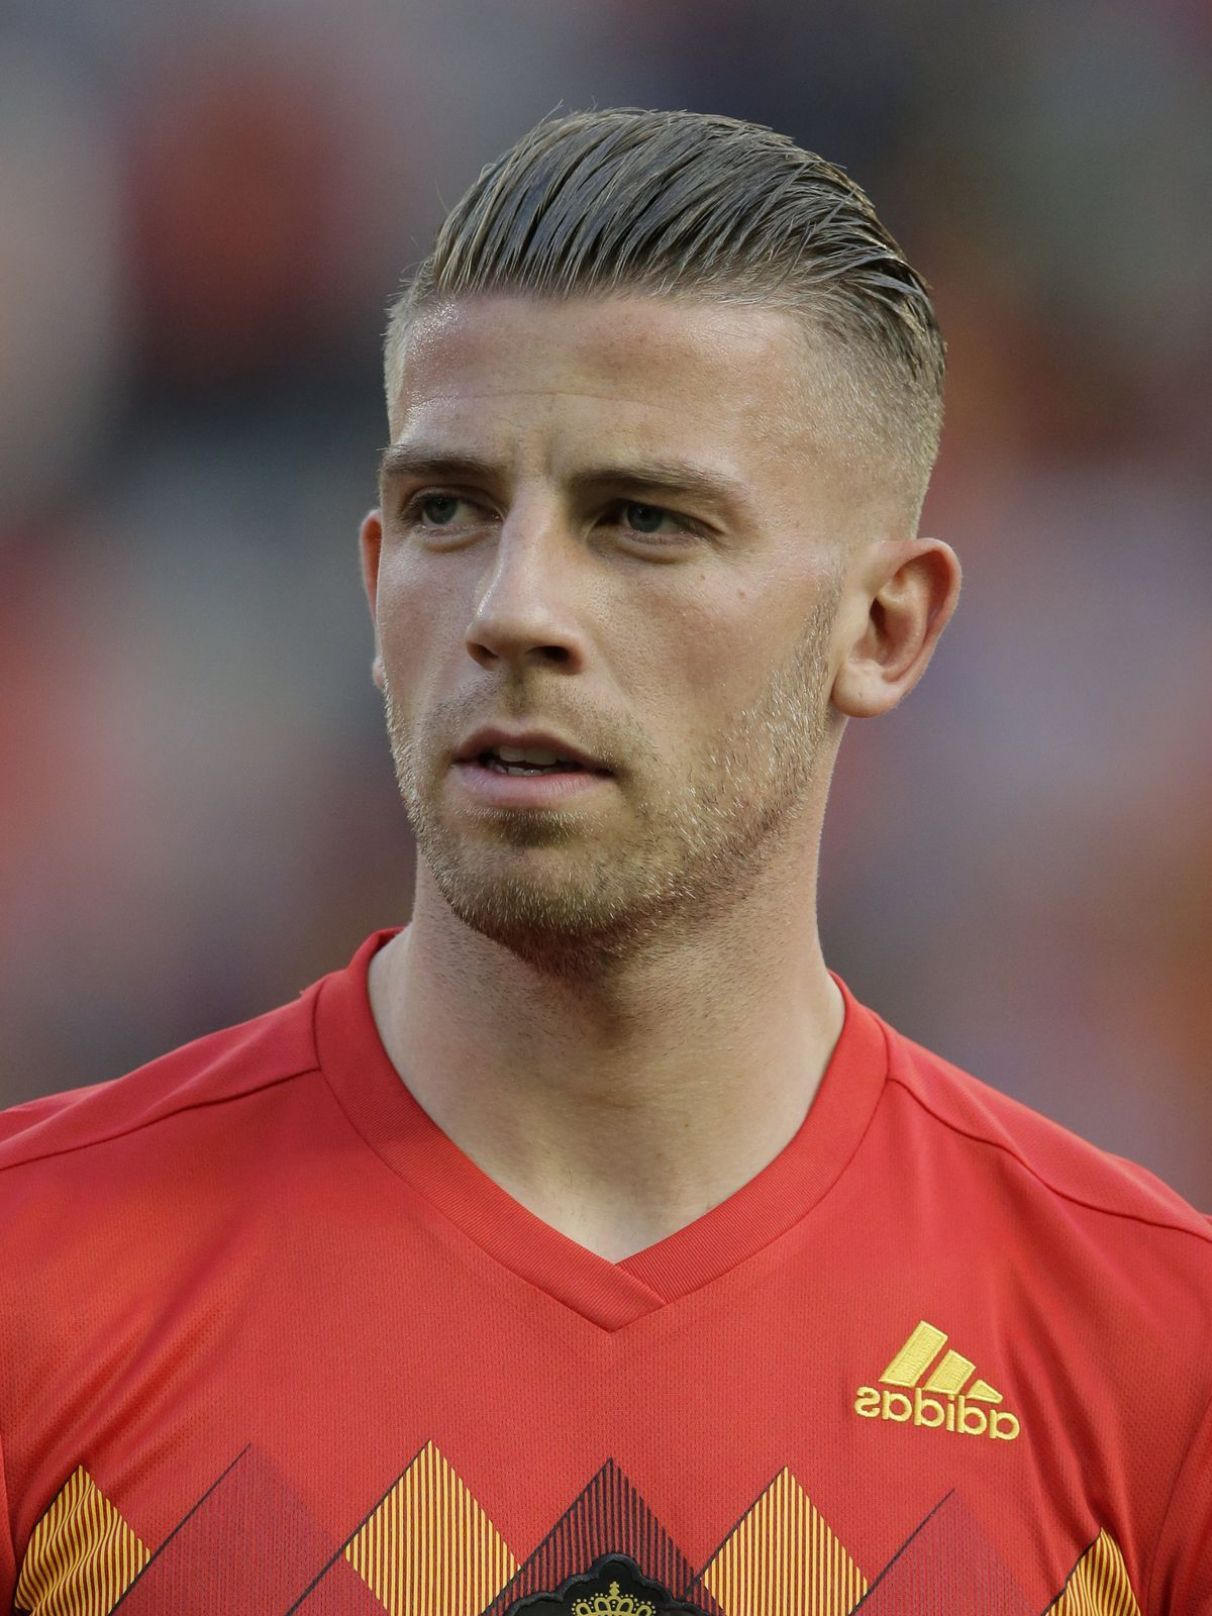 35 most popular soccer player hairstyles you must copy